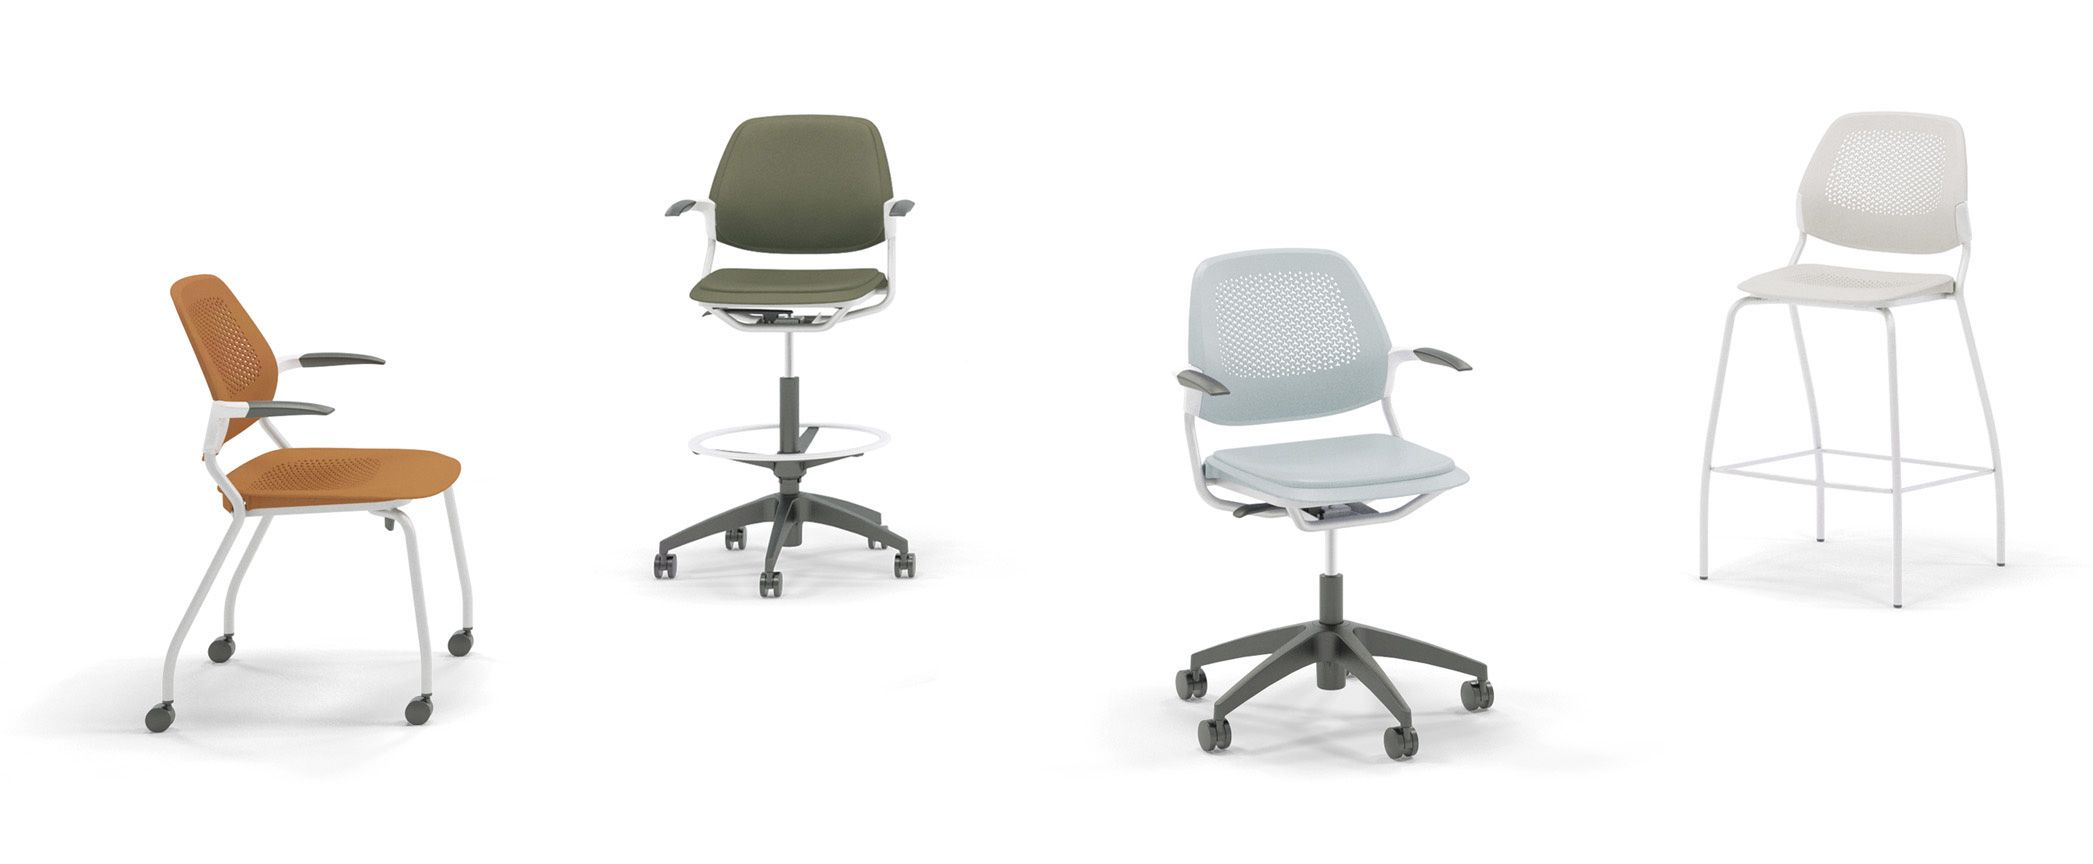 Allsteel Office Chair White Wishbone Replica Inspire Furniture Have A Seat